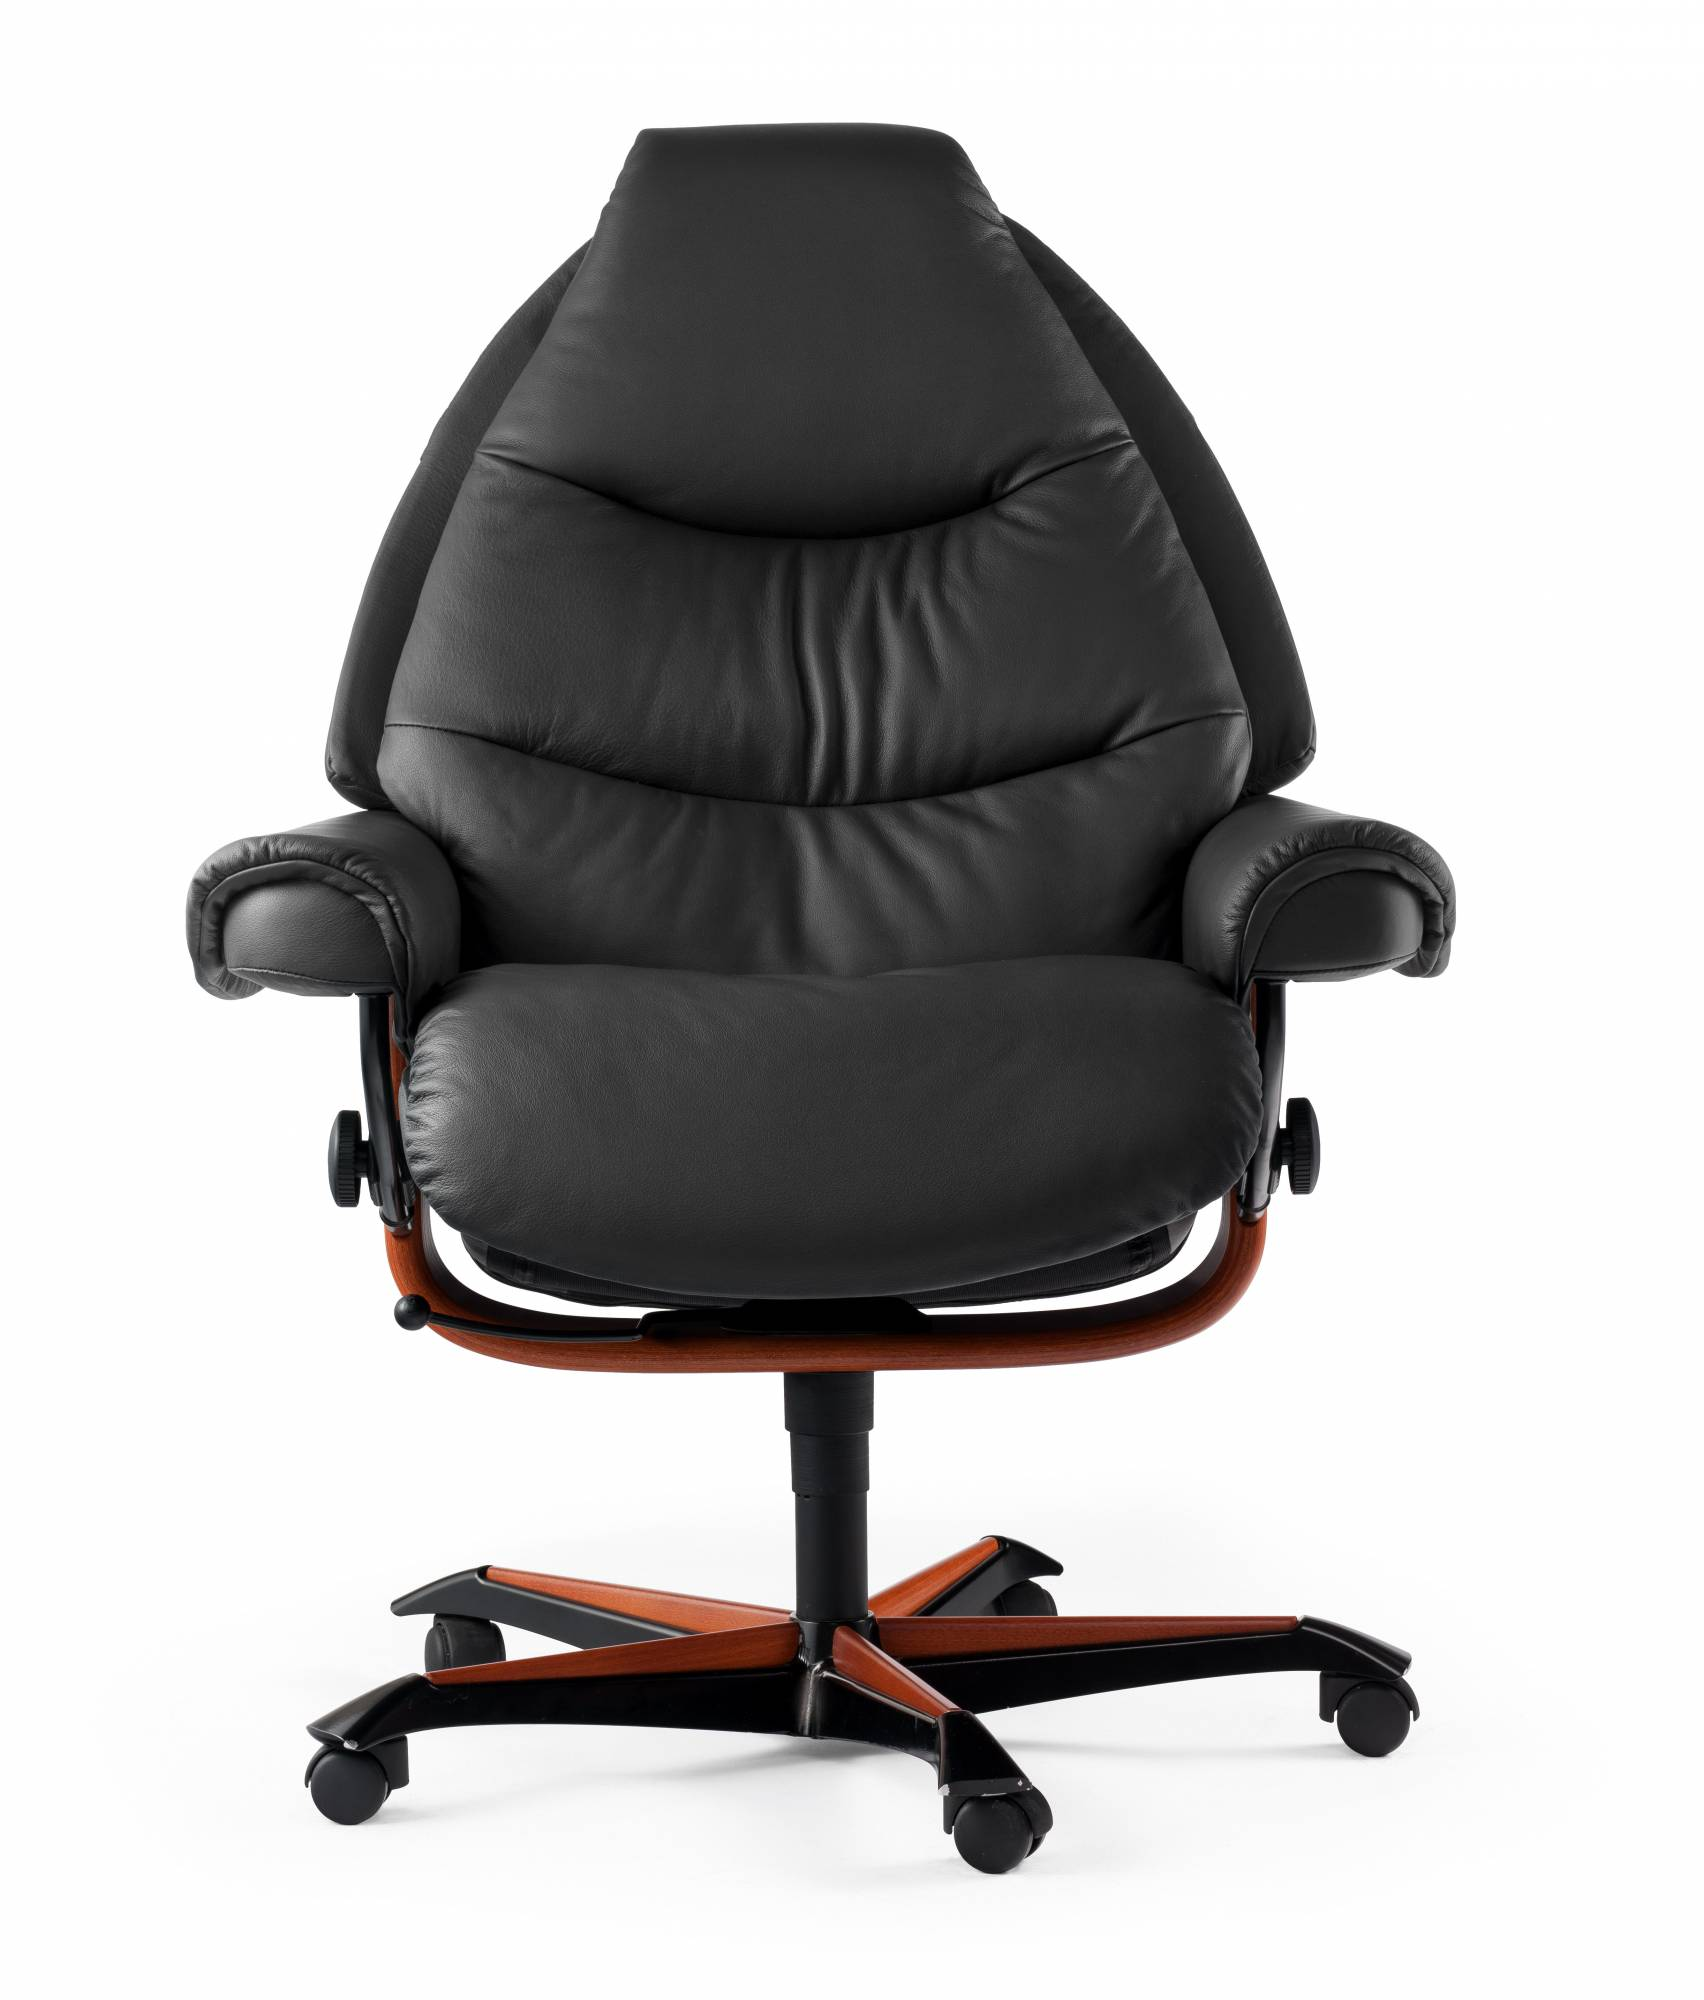 Stressless Office Chair Stressless Voyager Office Chair Chairs Rodgers Of York